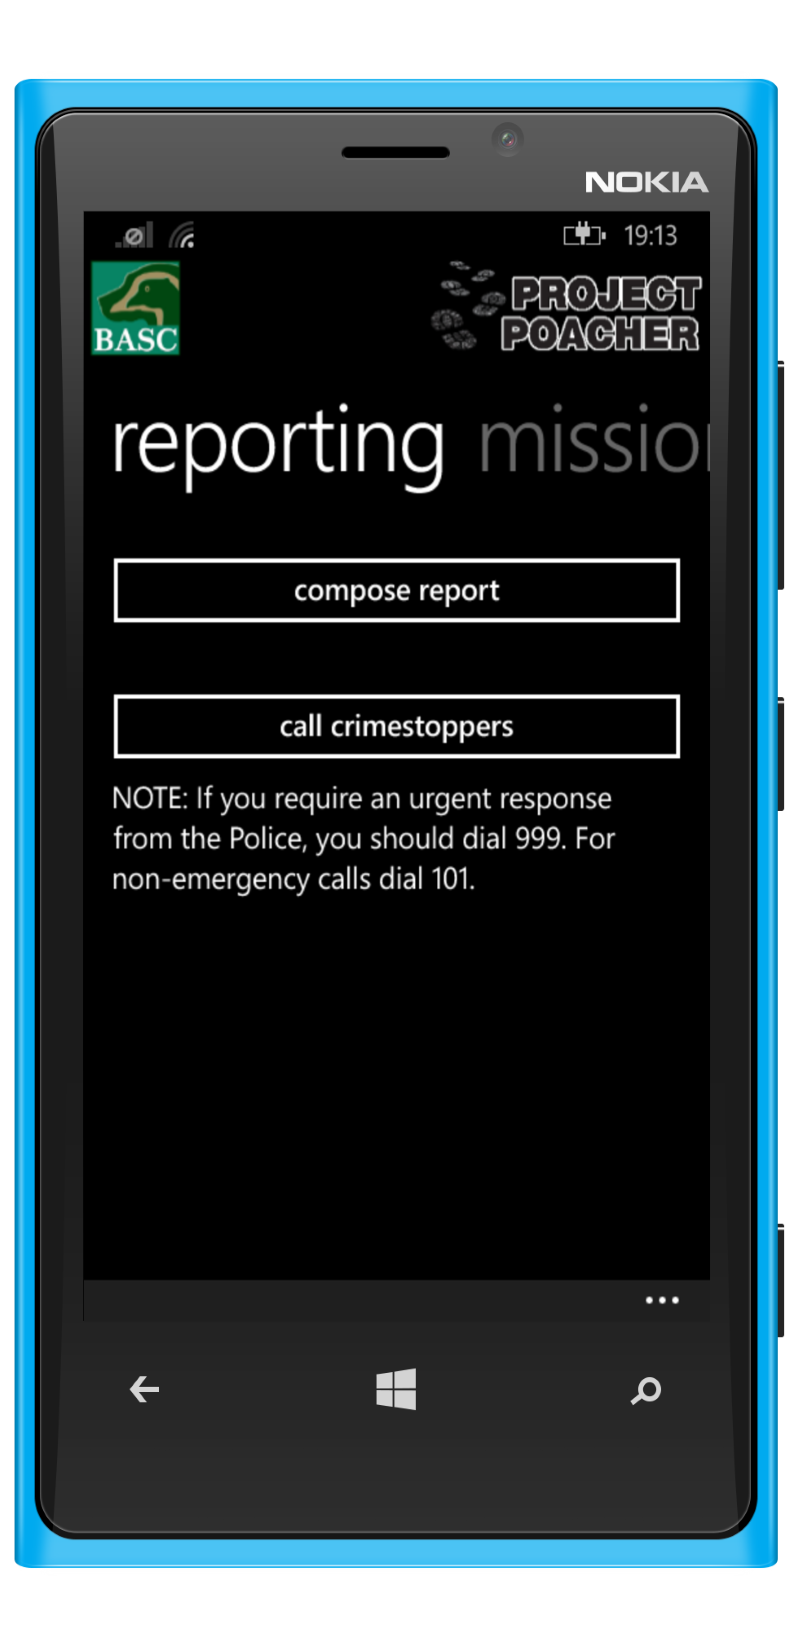 Windows Phone device with product screenshot